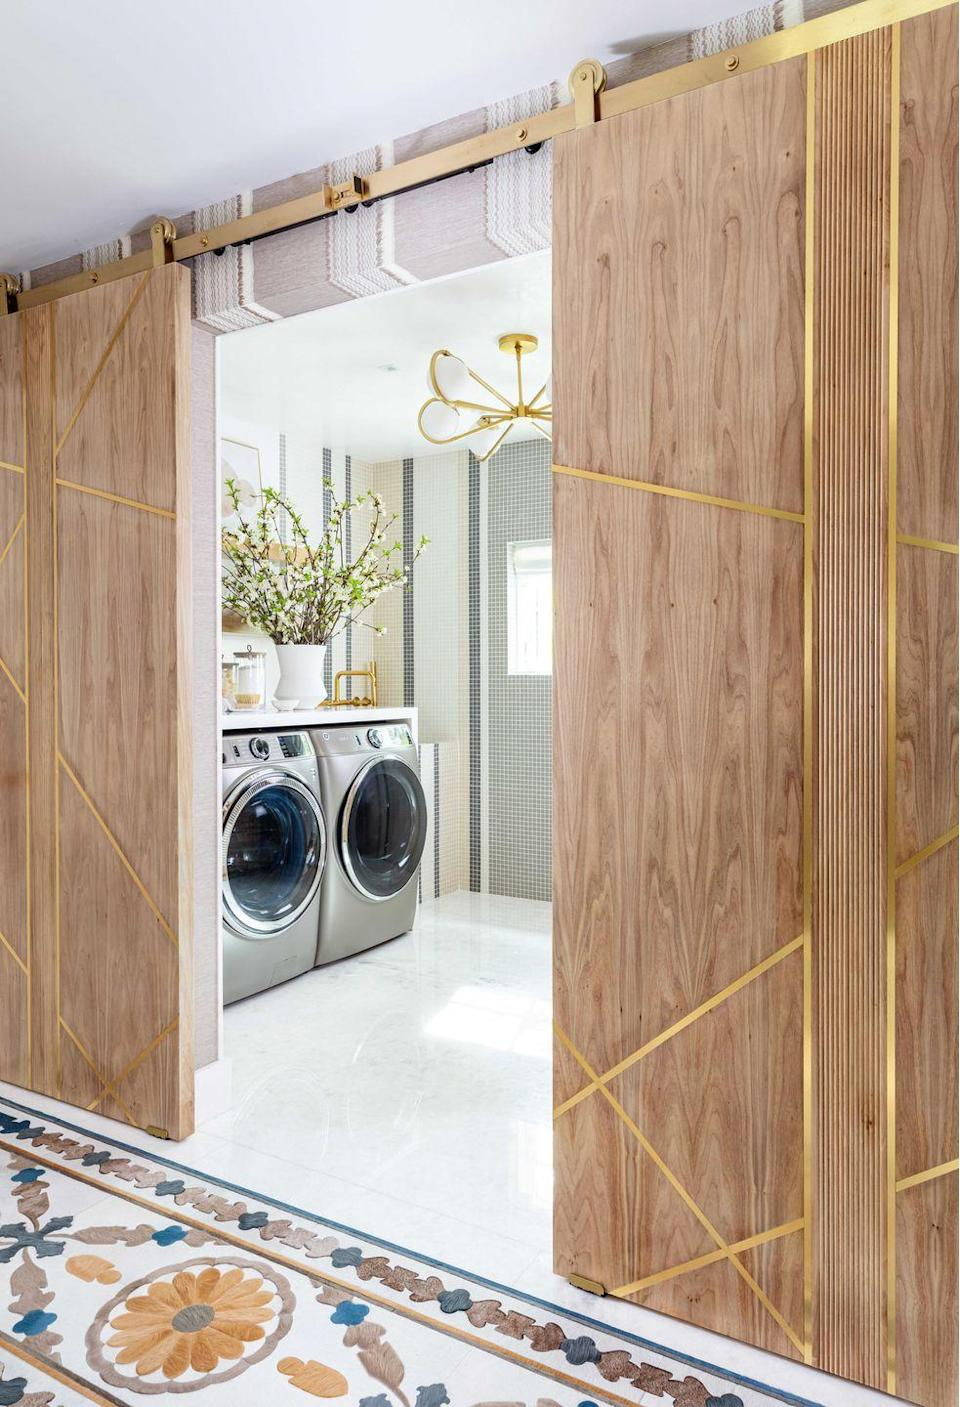 <p><strong>Who says utility rooms have to be boring? </strong>Lisa Hynes and Heather Weisz of HW Interiors set out to dispel this myth with their over-the-top laundry room. Next to a custom hair-on-hide carpet from Kyle Bunting, wood barn doors with brass accents open to reveal a washer and dryer set on an onyx floor that's lit from below for dramatic effect, with a brass-trimmed Currey & Company chandelier and brass Kohler fixtures for extra glam. With a room this pretty, who <em>wouldn't</em> want to do laundry? </p>